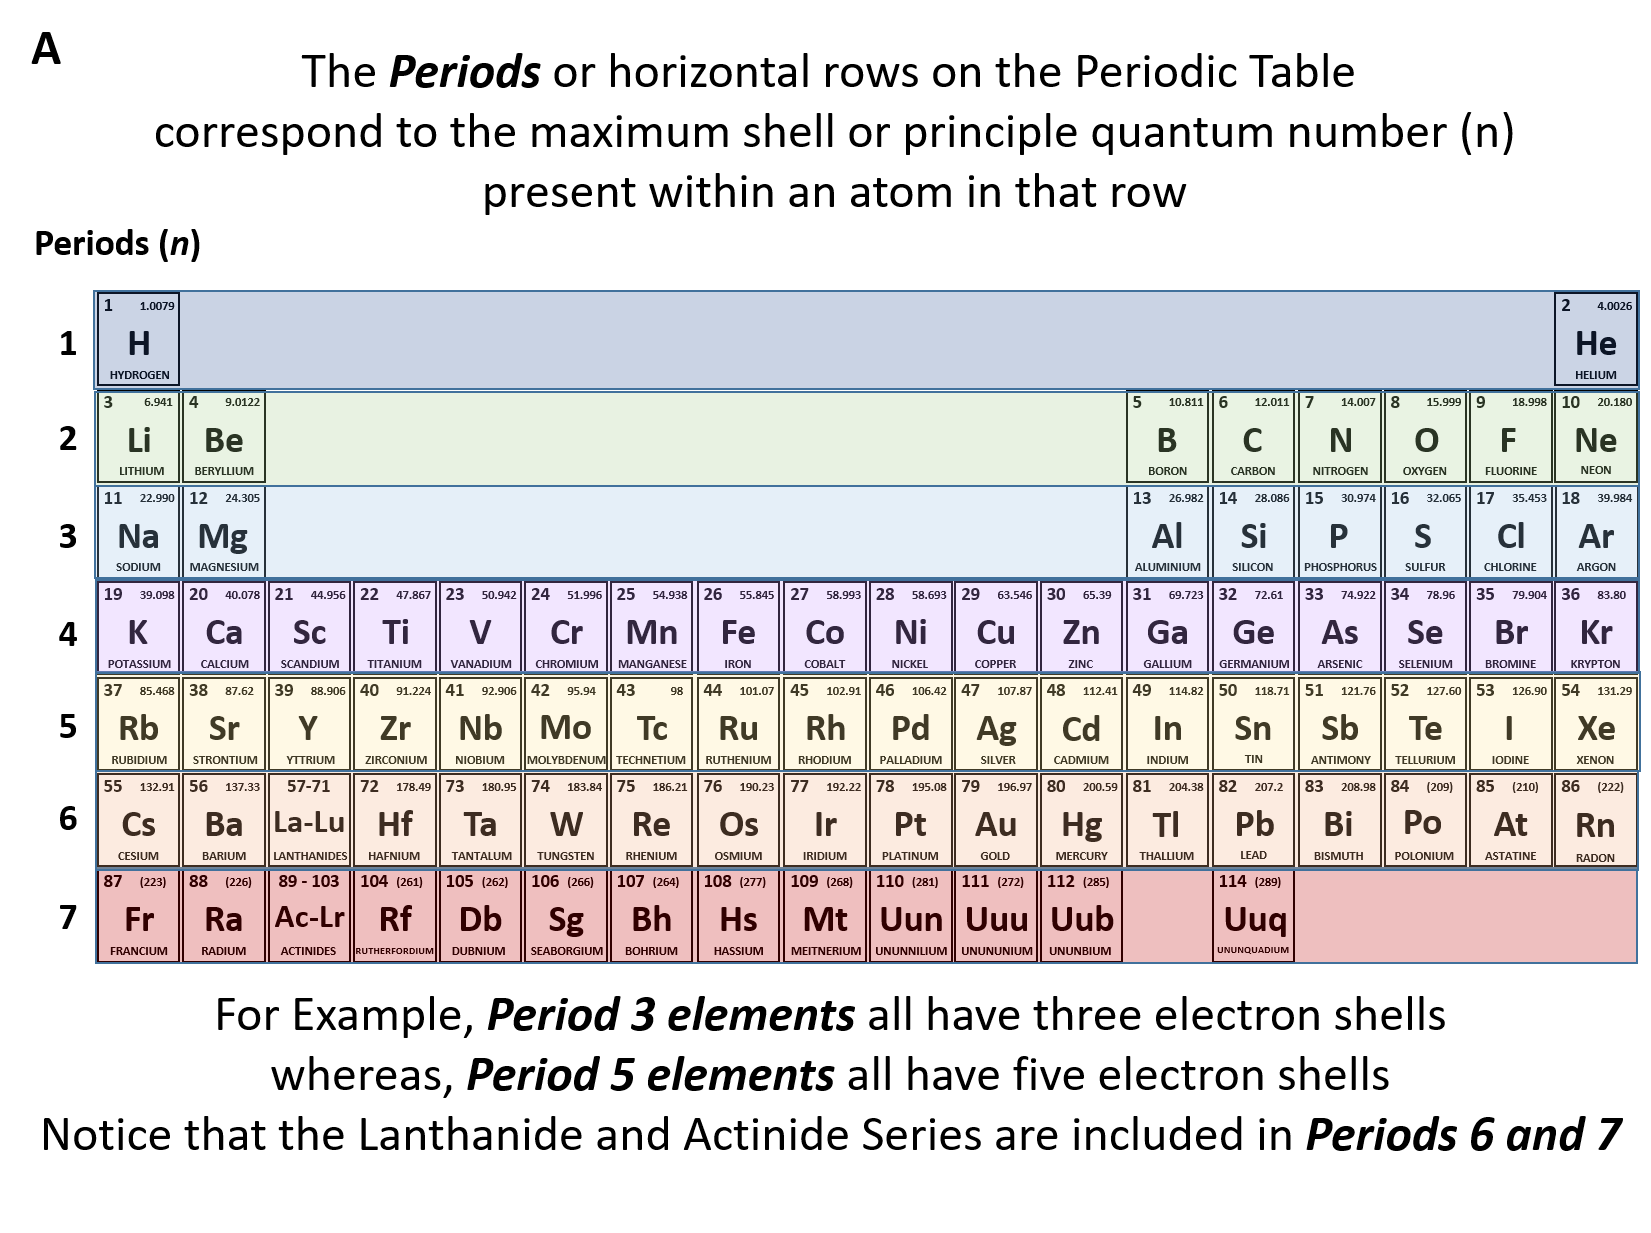 figure 210 the periods of the periodic table represent electron shells a each electron shell is represented by a row or period on the the periodic table - In The Periodic Table As The Atomic Number Increases From 11 To 17